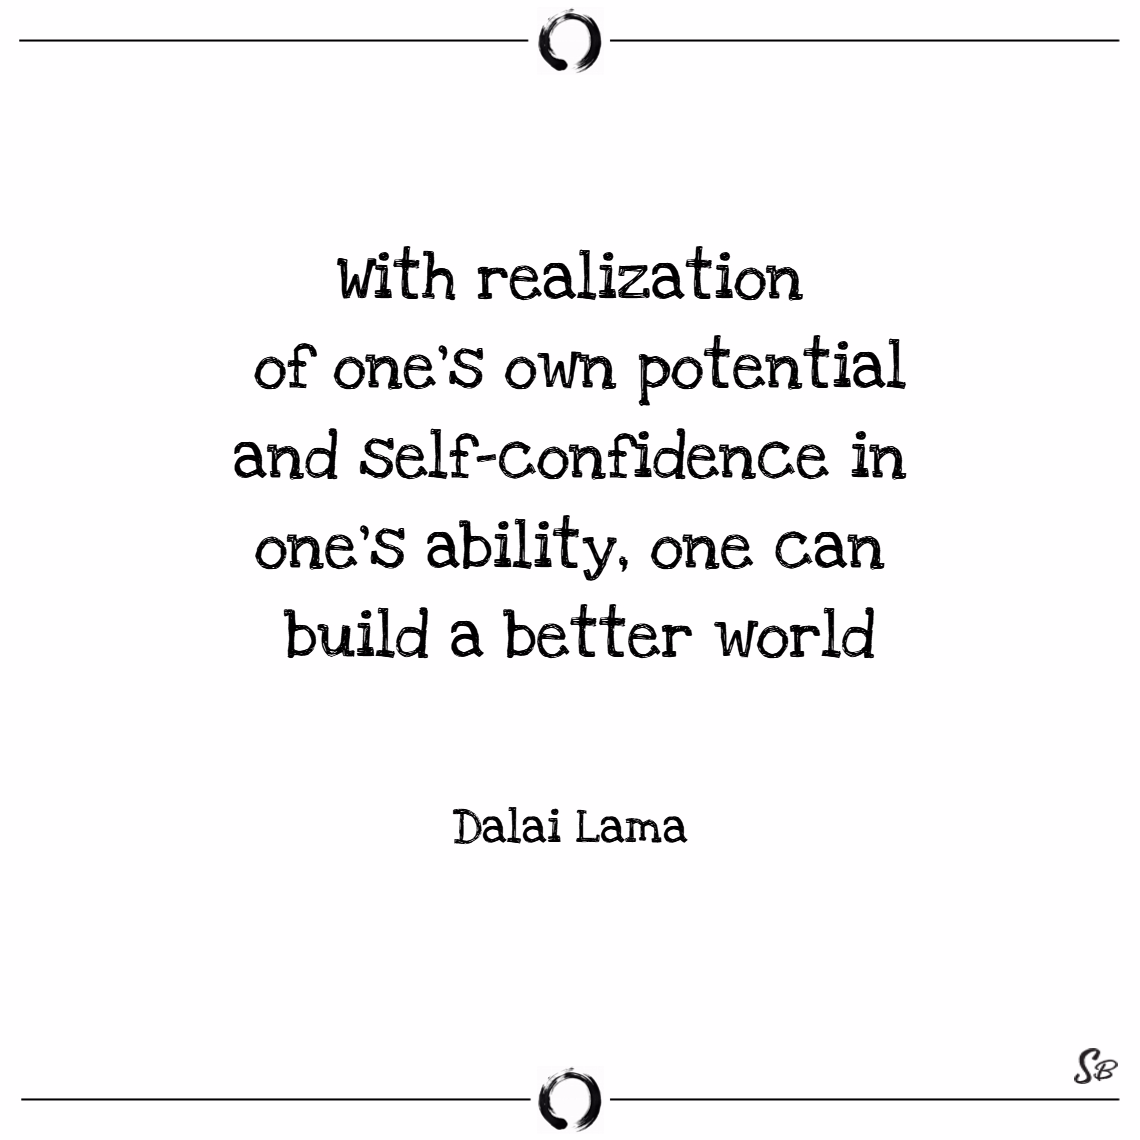 With realization of one's own potential and self confidence in one's ability, one can build a better world. – dalai lama